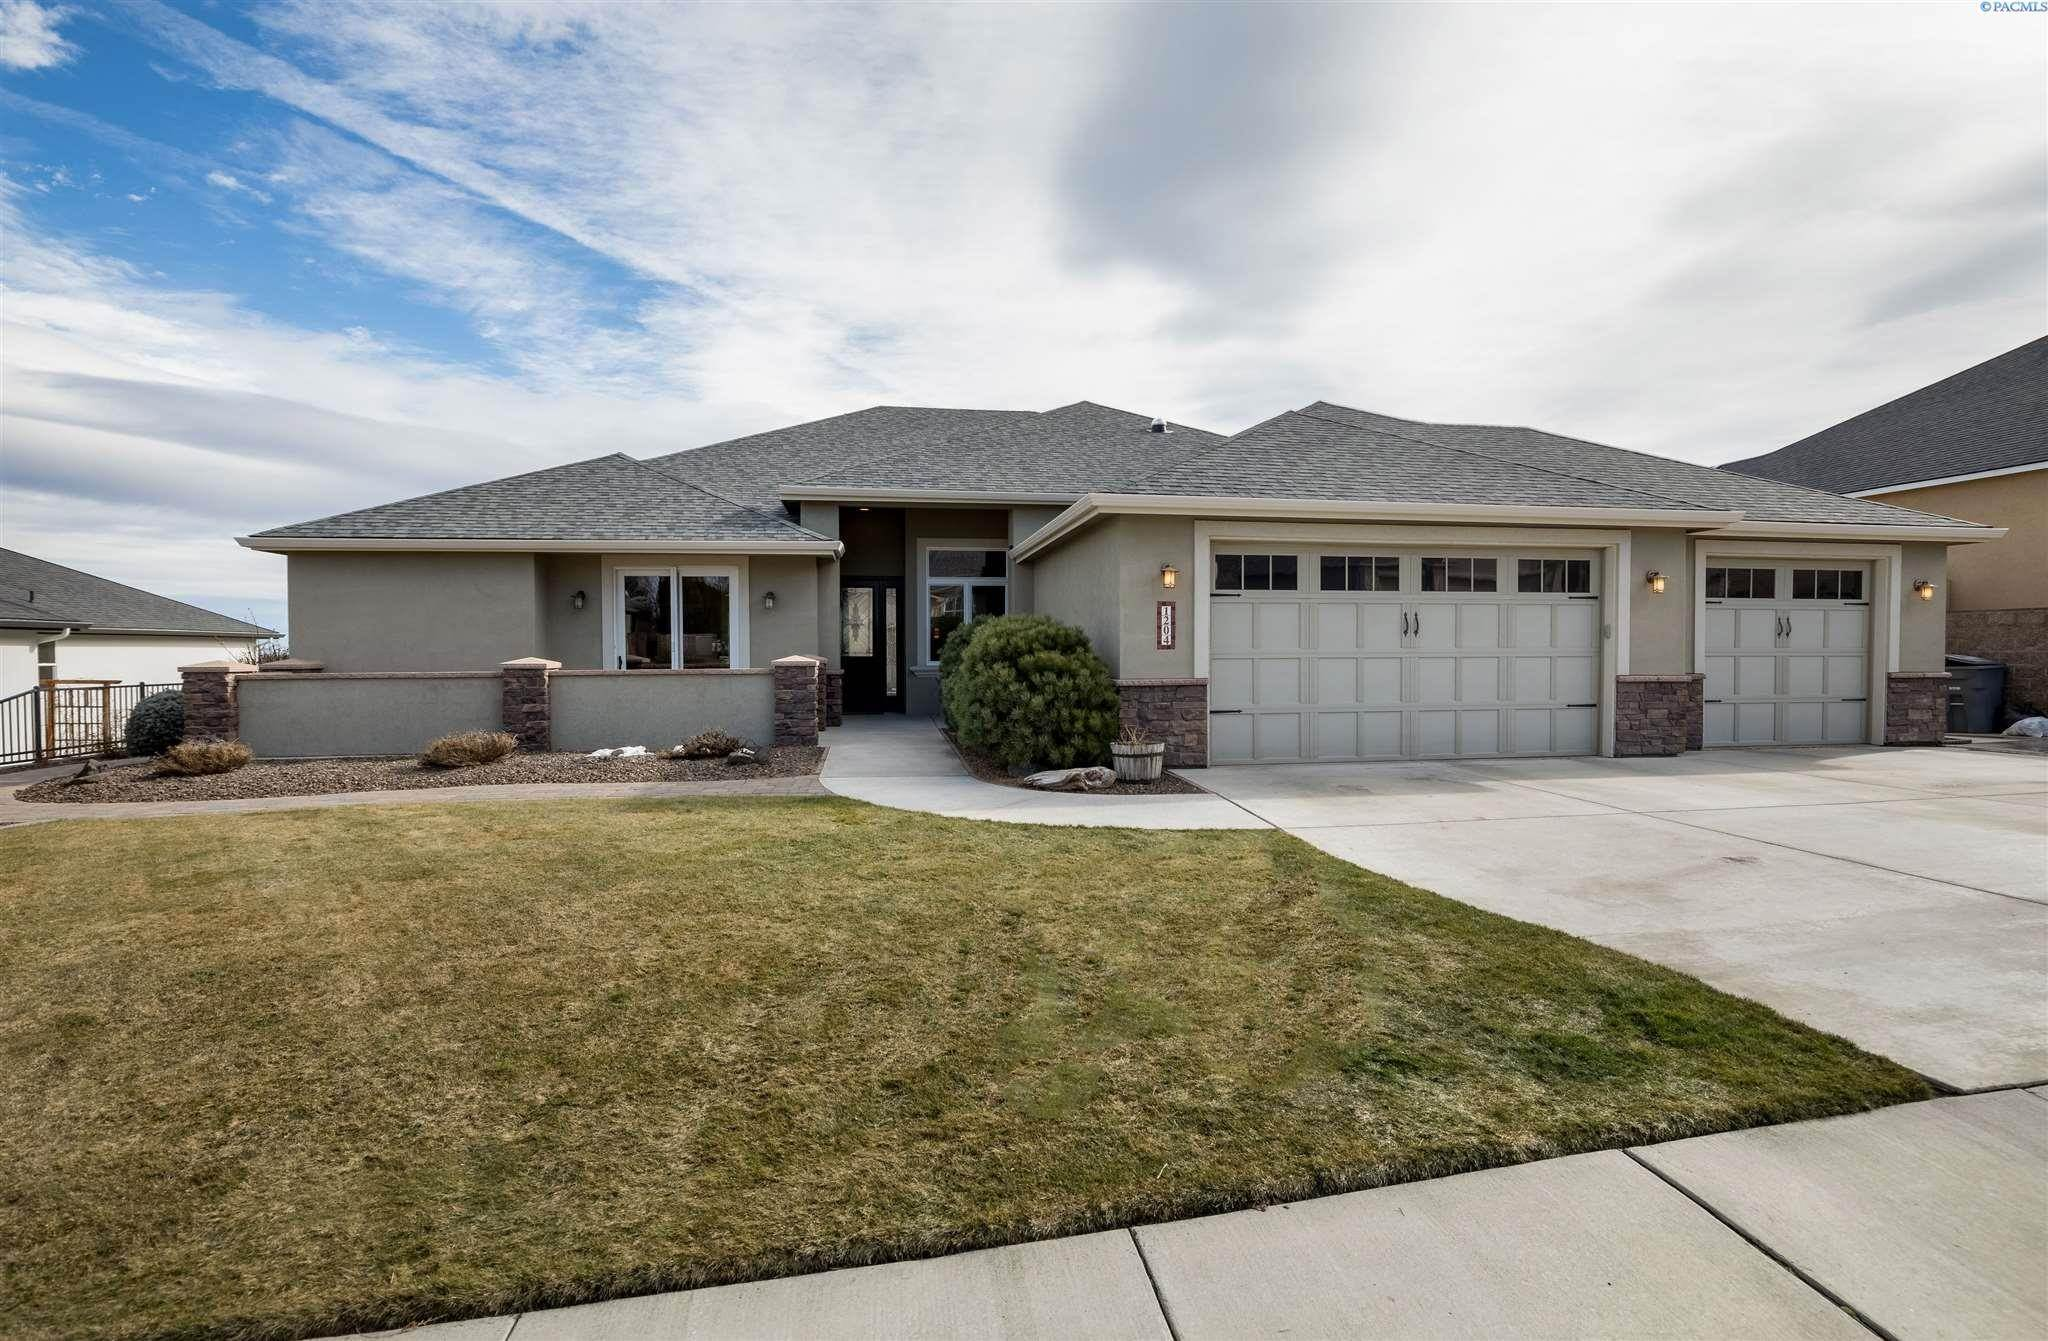 Single Family Homes for Sale at 1204 Plateau Drive Richland, Washington 99352 United States